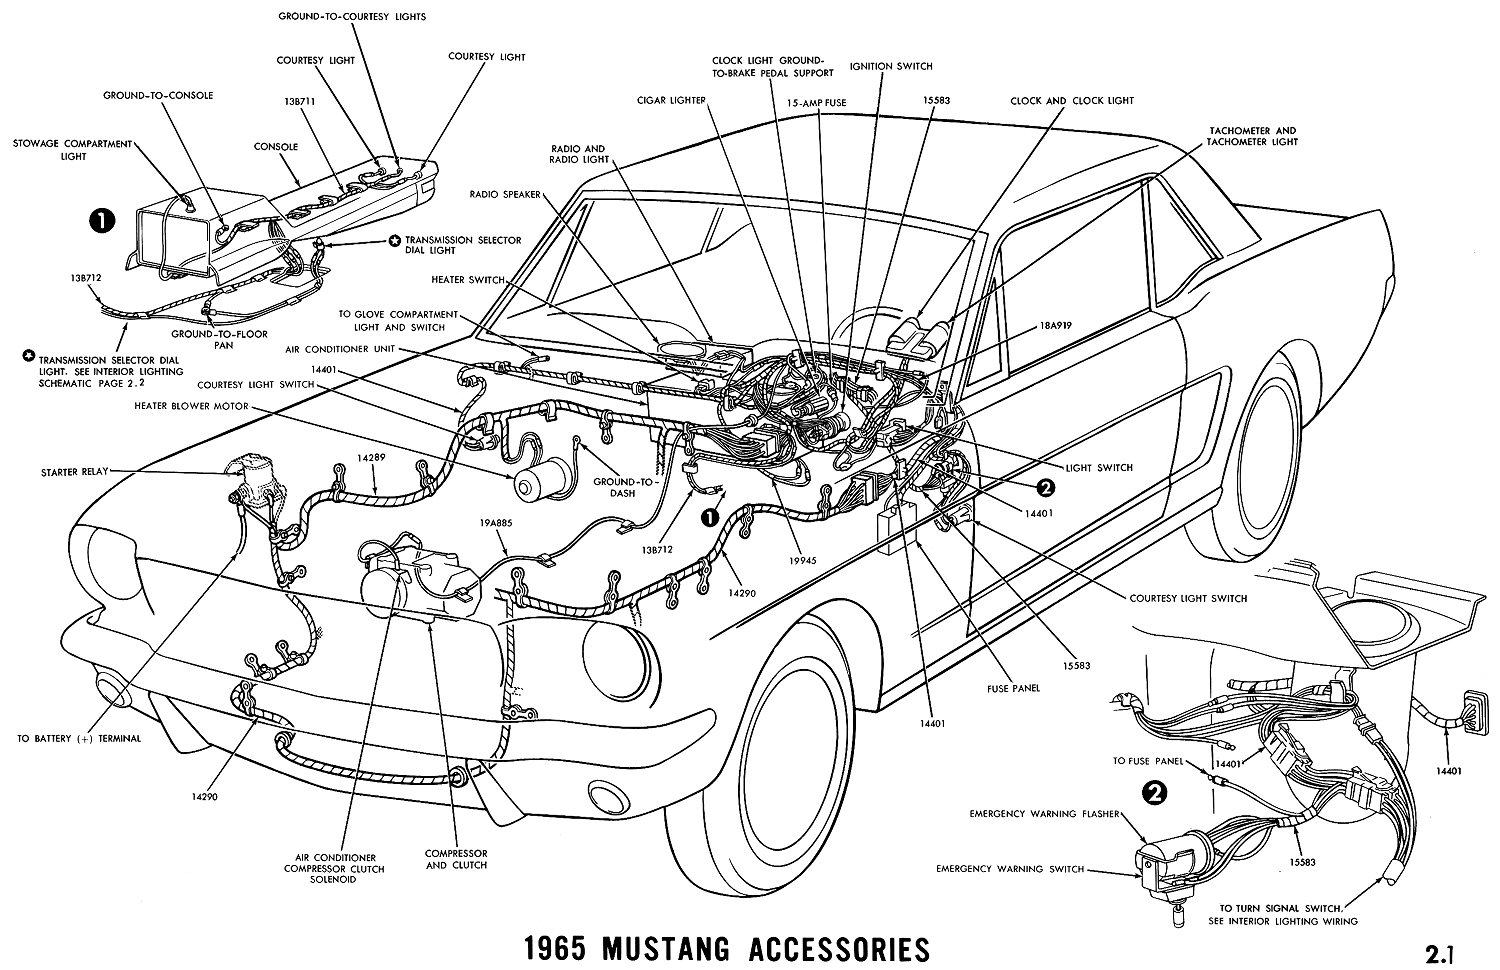 1965h 1965 mustang wiring diagrams average joe restoration 1965 mustang alternator wiring diagram at bakdesigns.co